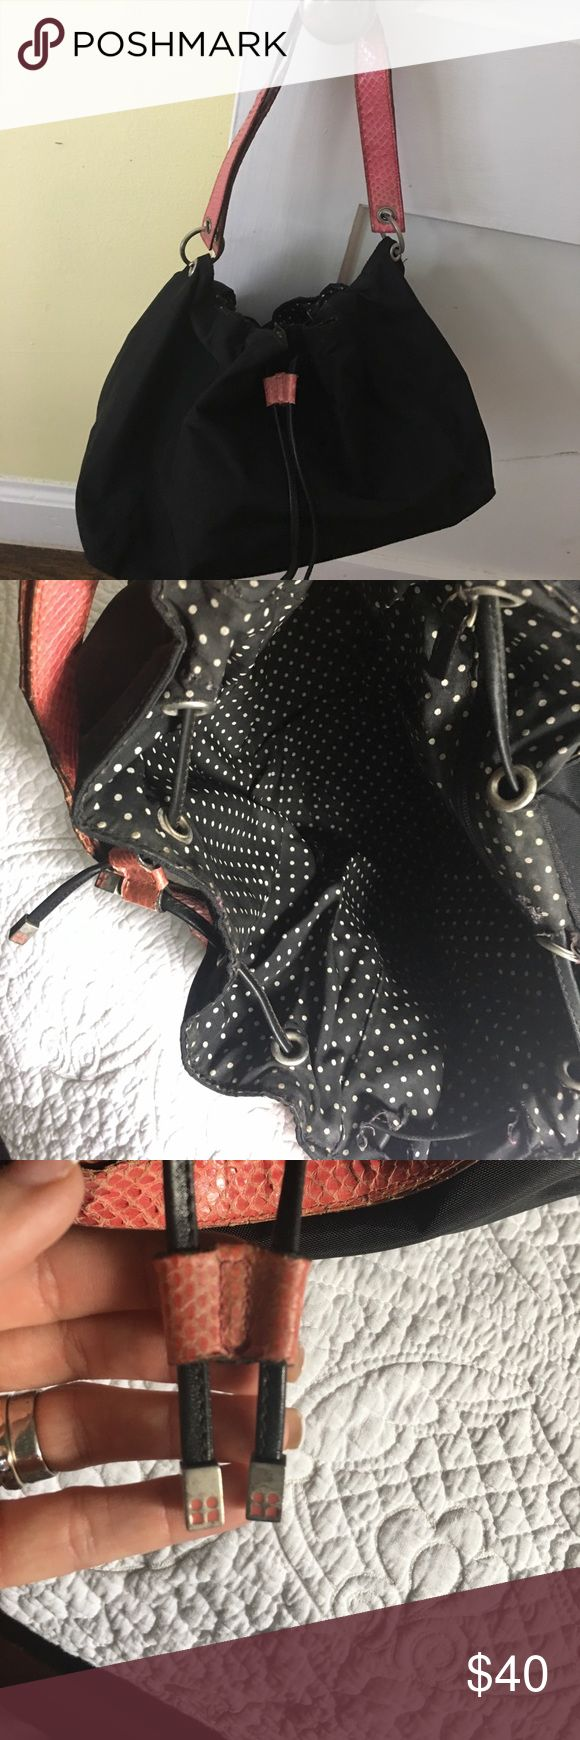 Kate Spade Drawstring Shoulder Bag So cute!  Used!  Will clean up well in the wash!  Cute polka dot interior!  AUTHENTIC kate spade Bags Shoulder Bags